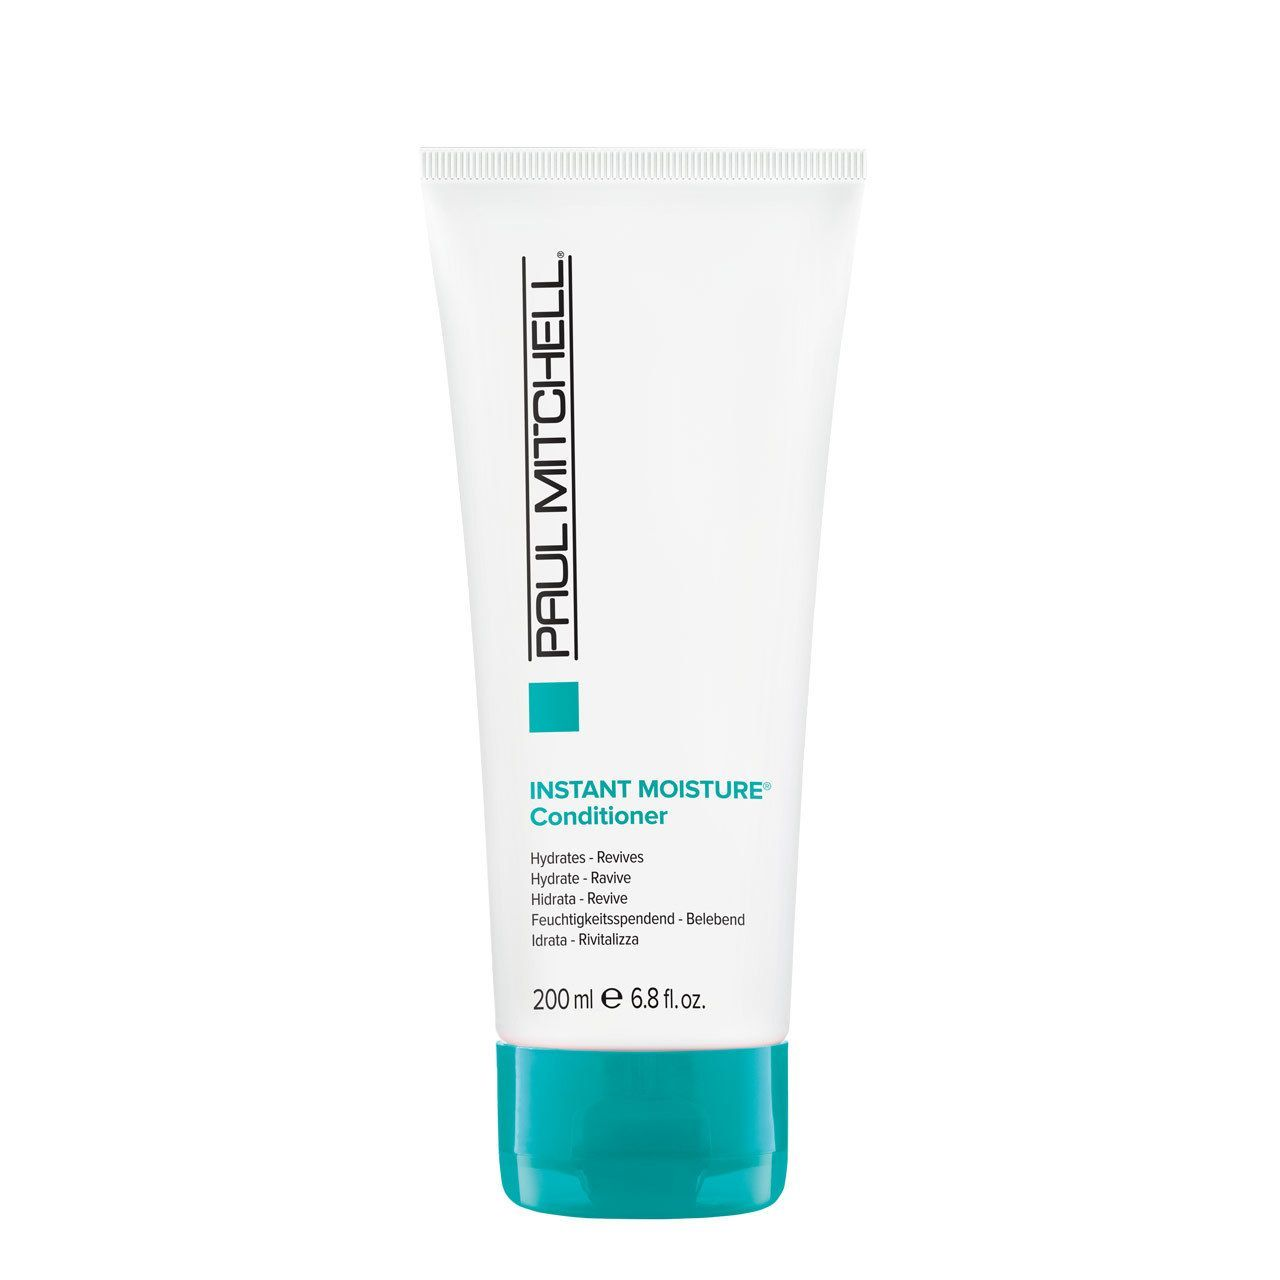 Paul Mitchell Instant Moisture Daily Conditioner - 200ml